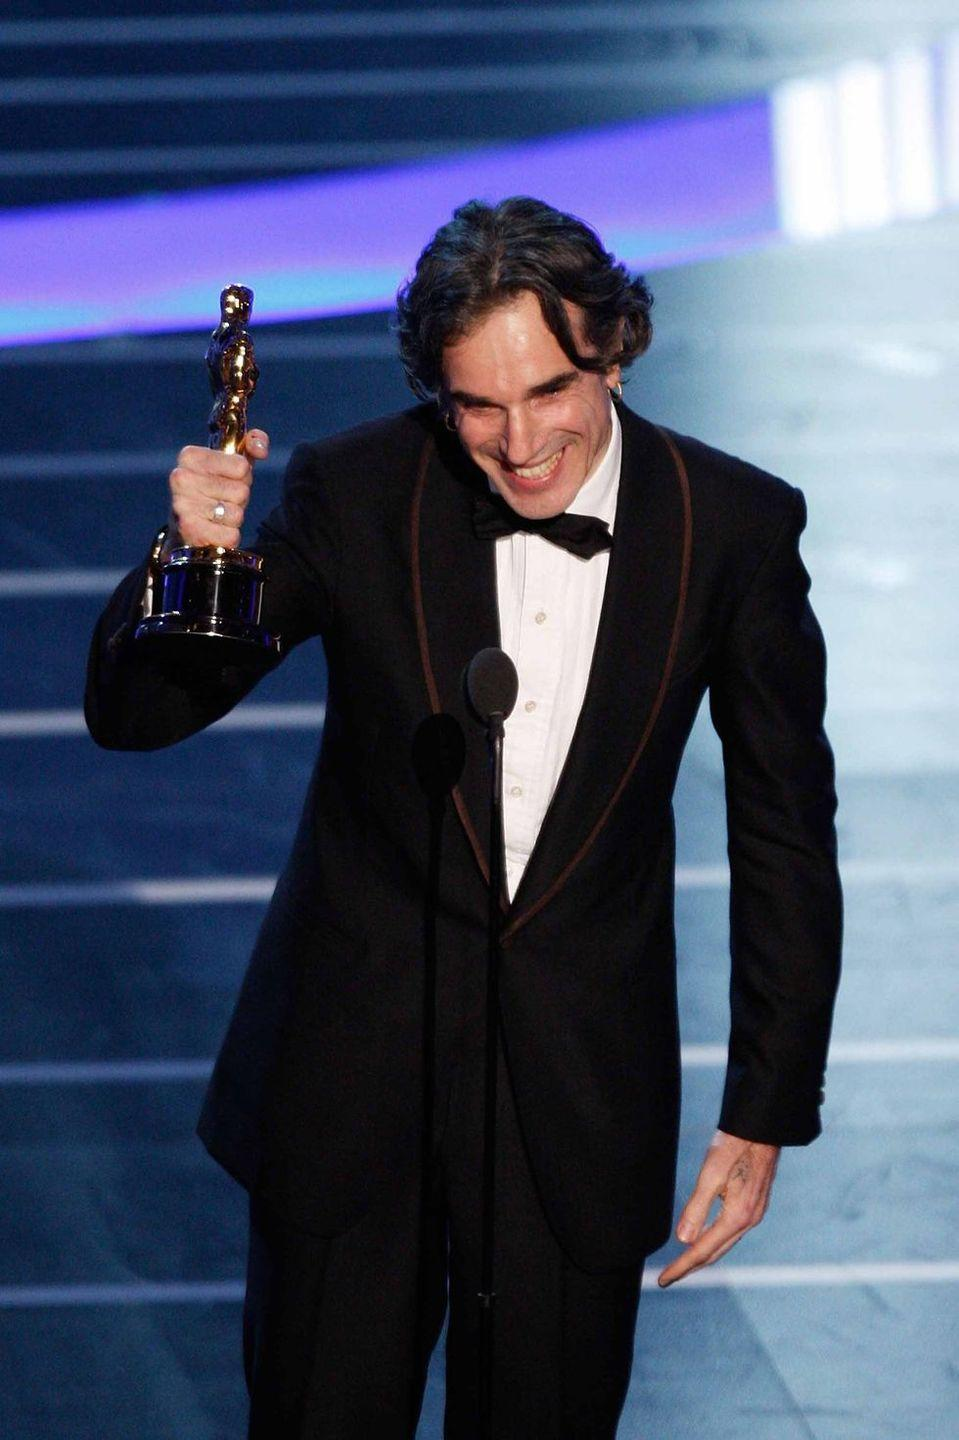 <p>As much of a chameleon on the carpet as in his films, every iteration of Daniel Day-Lewis's award-show style is impressive.</p>